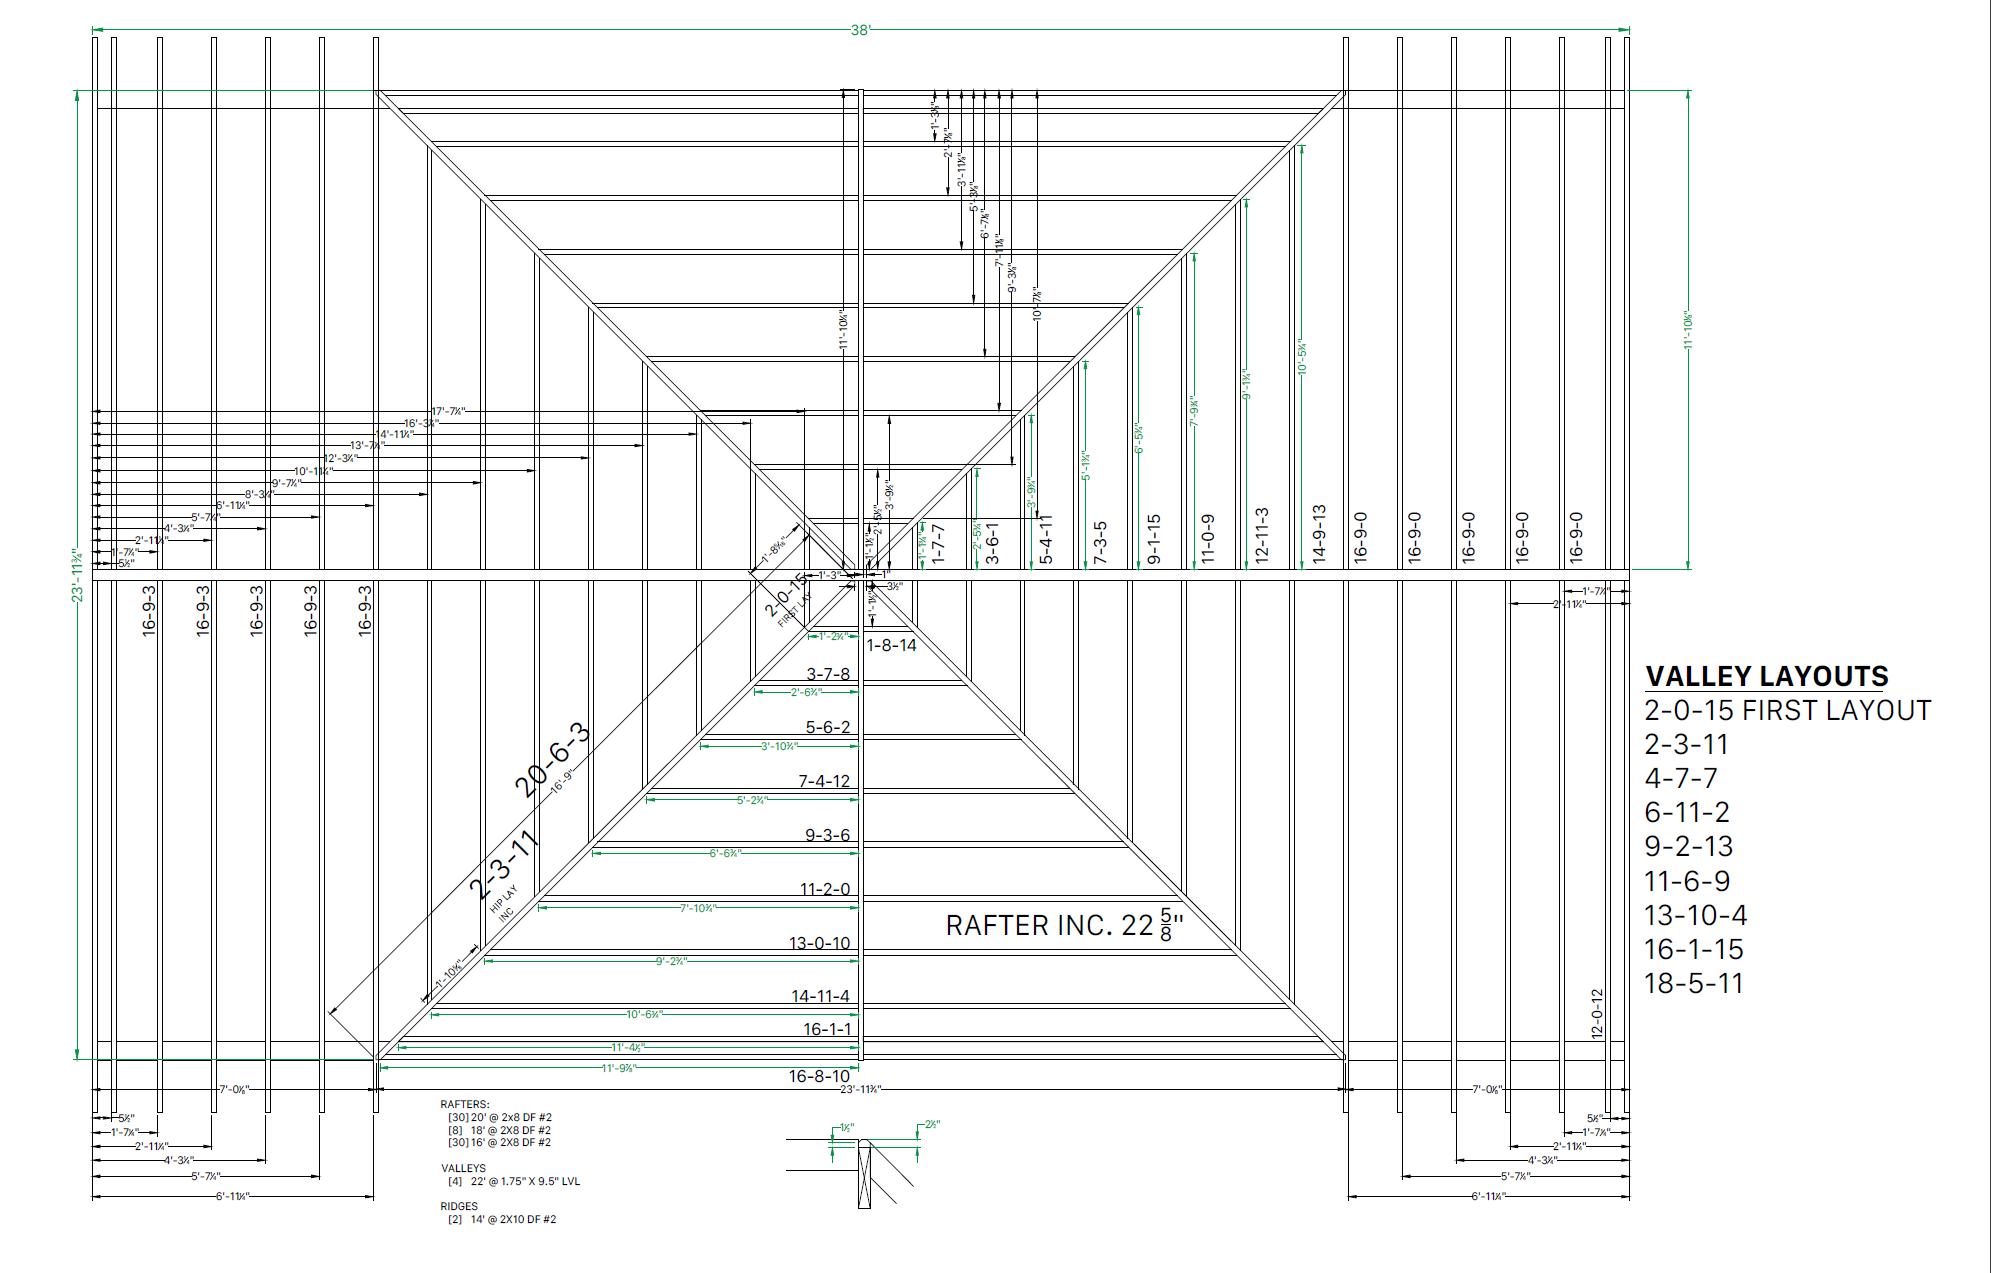 Hand cutting a roof after a 10 year break-acrobat_ad2ob8o0h0.png